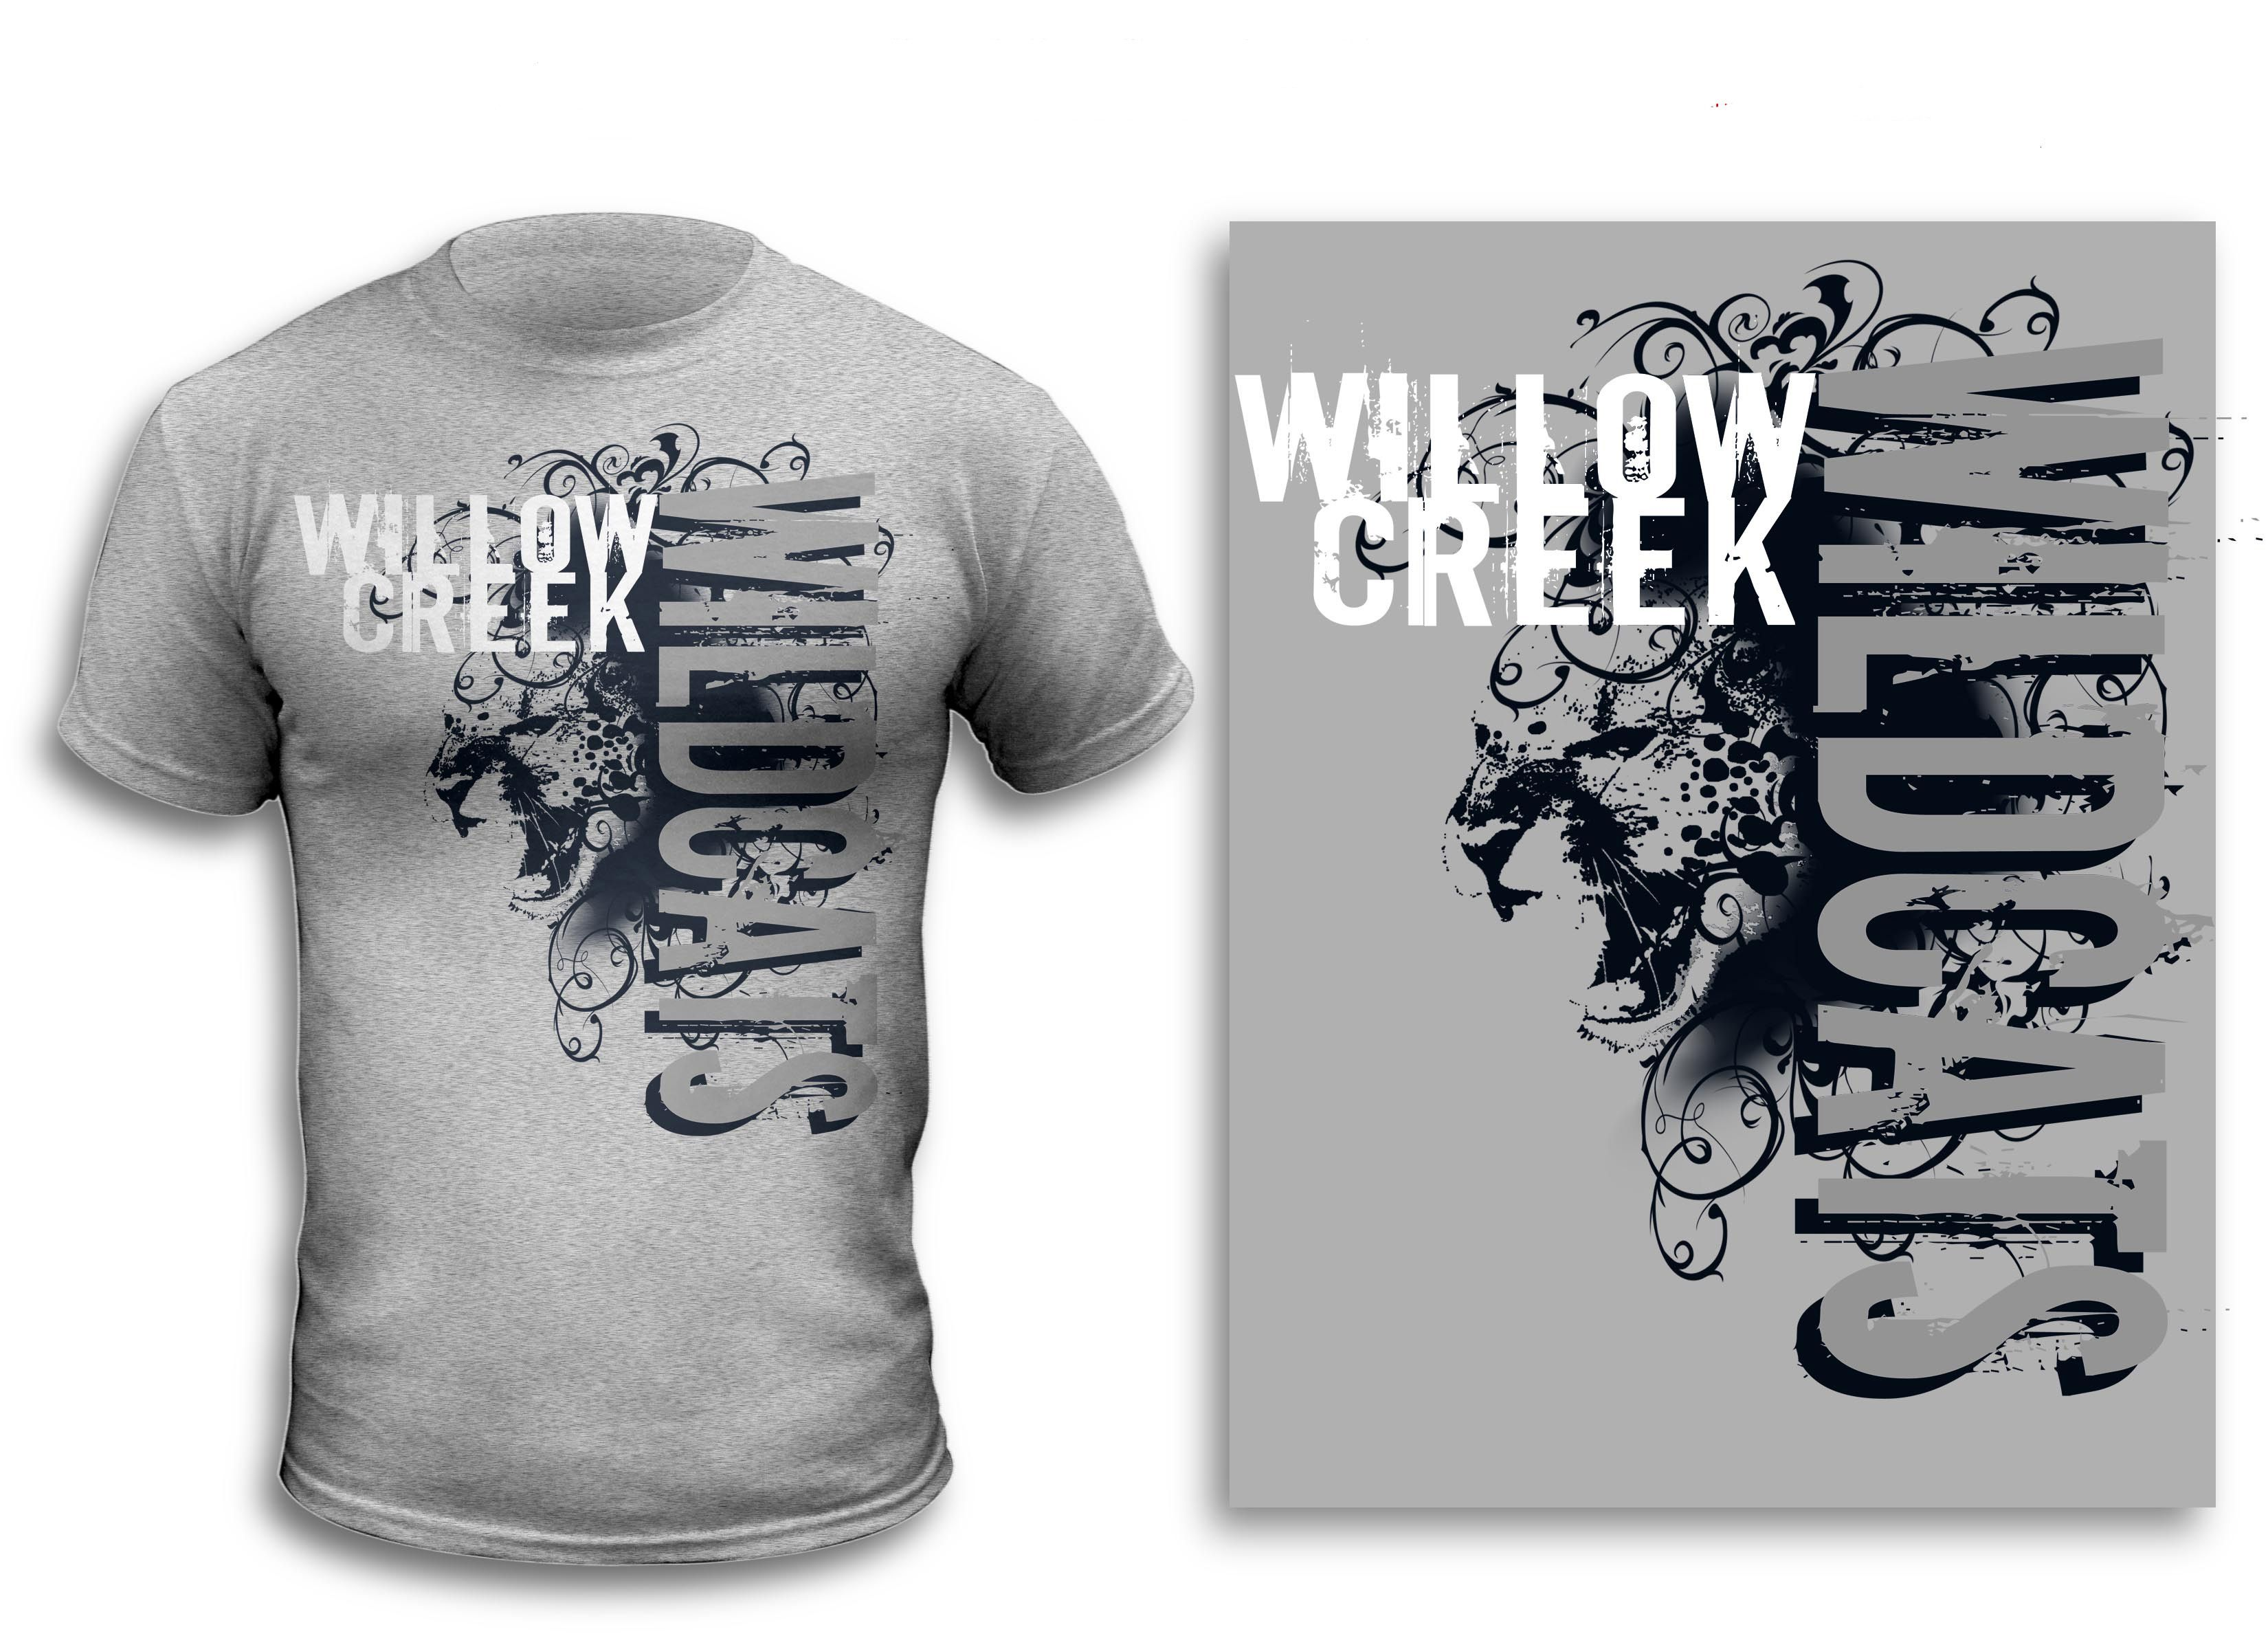 Indian Spiritwear T-Shirt Design. School Spiritwear Shirts And